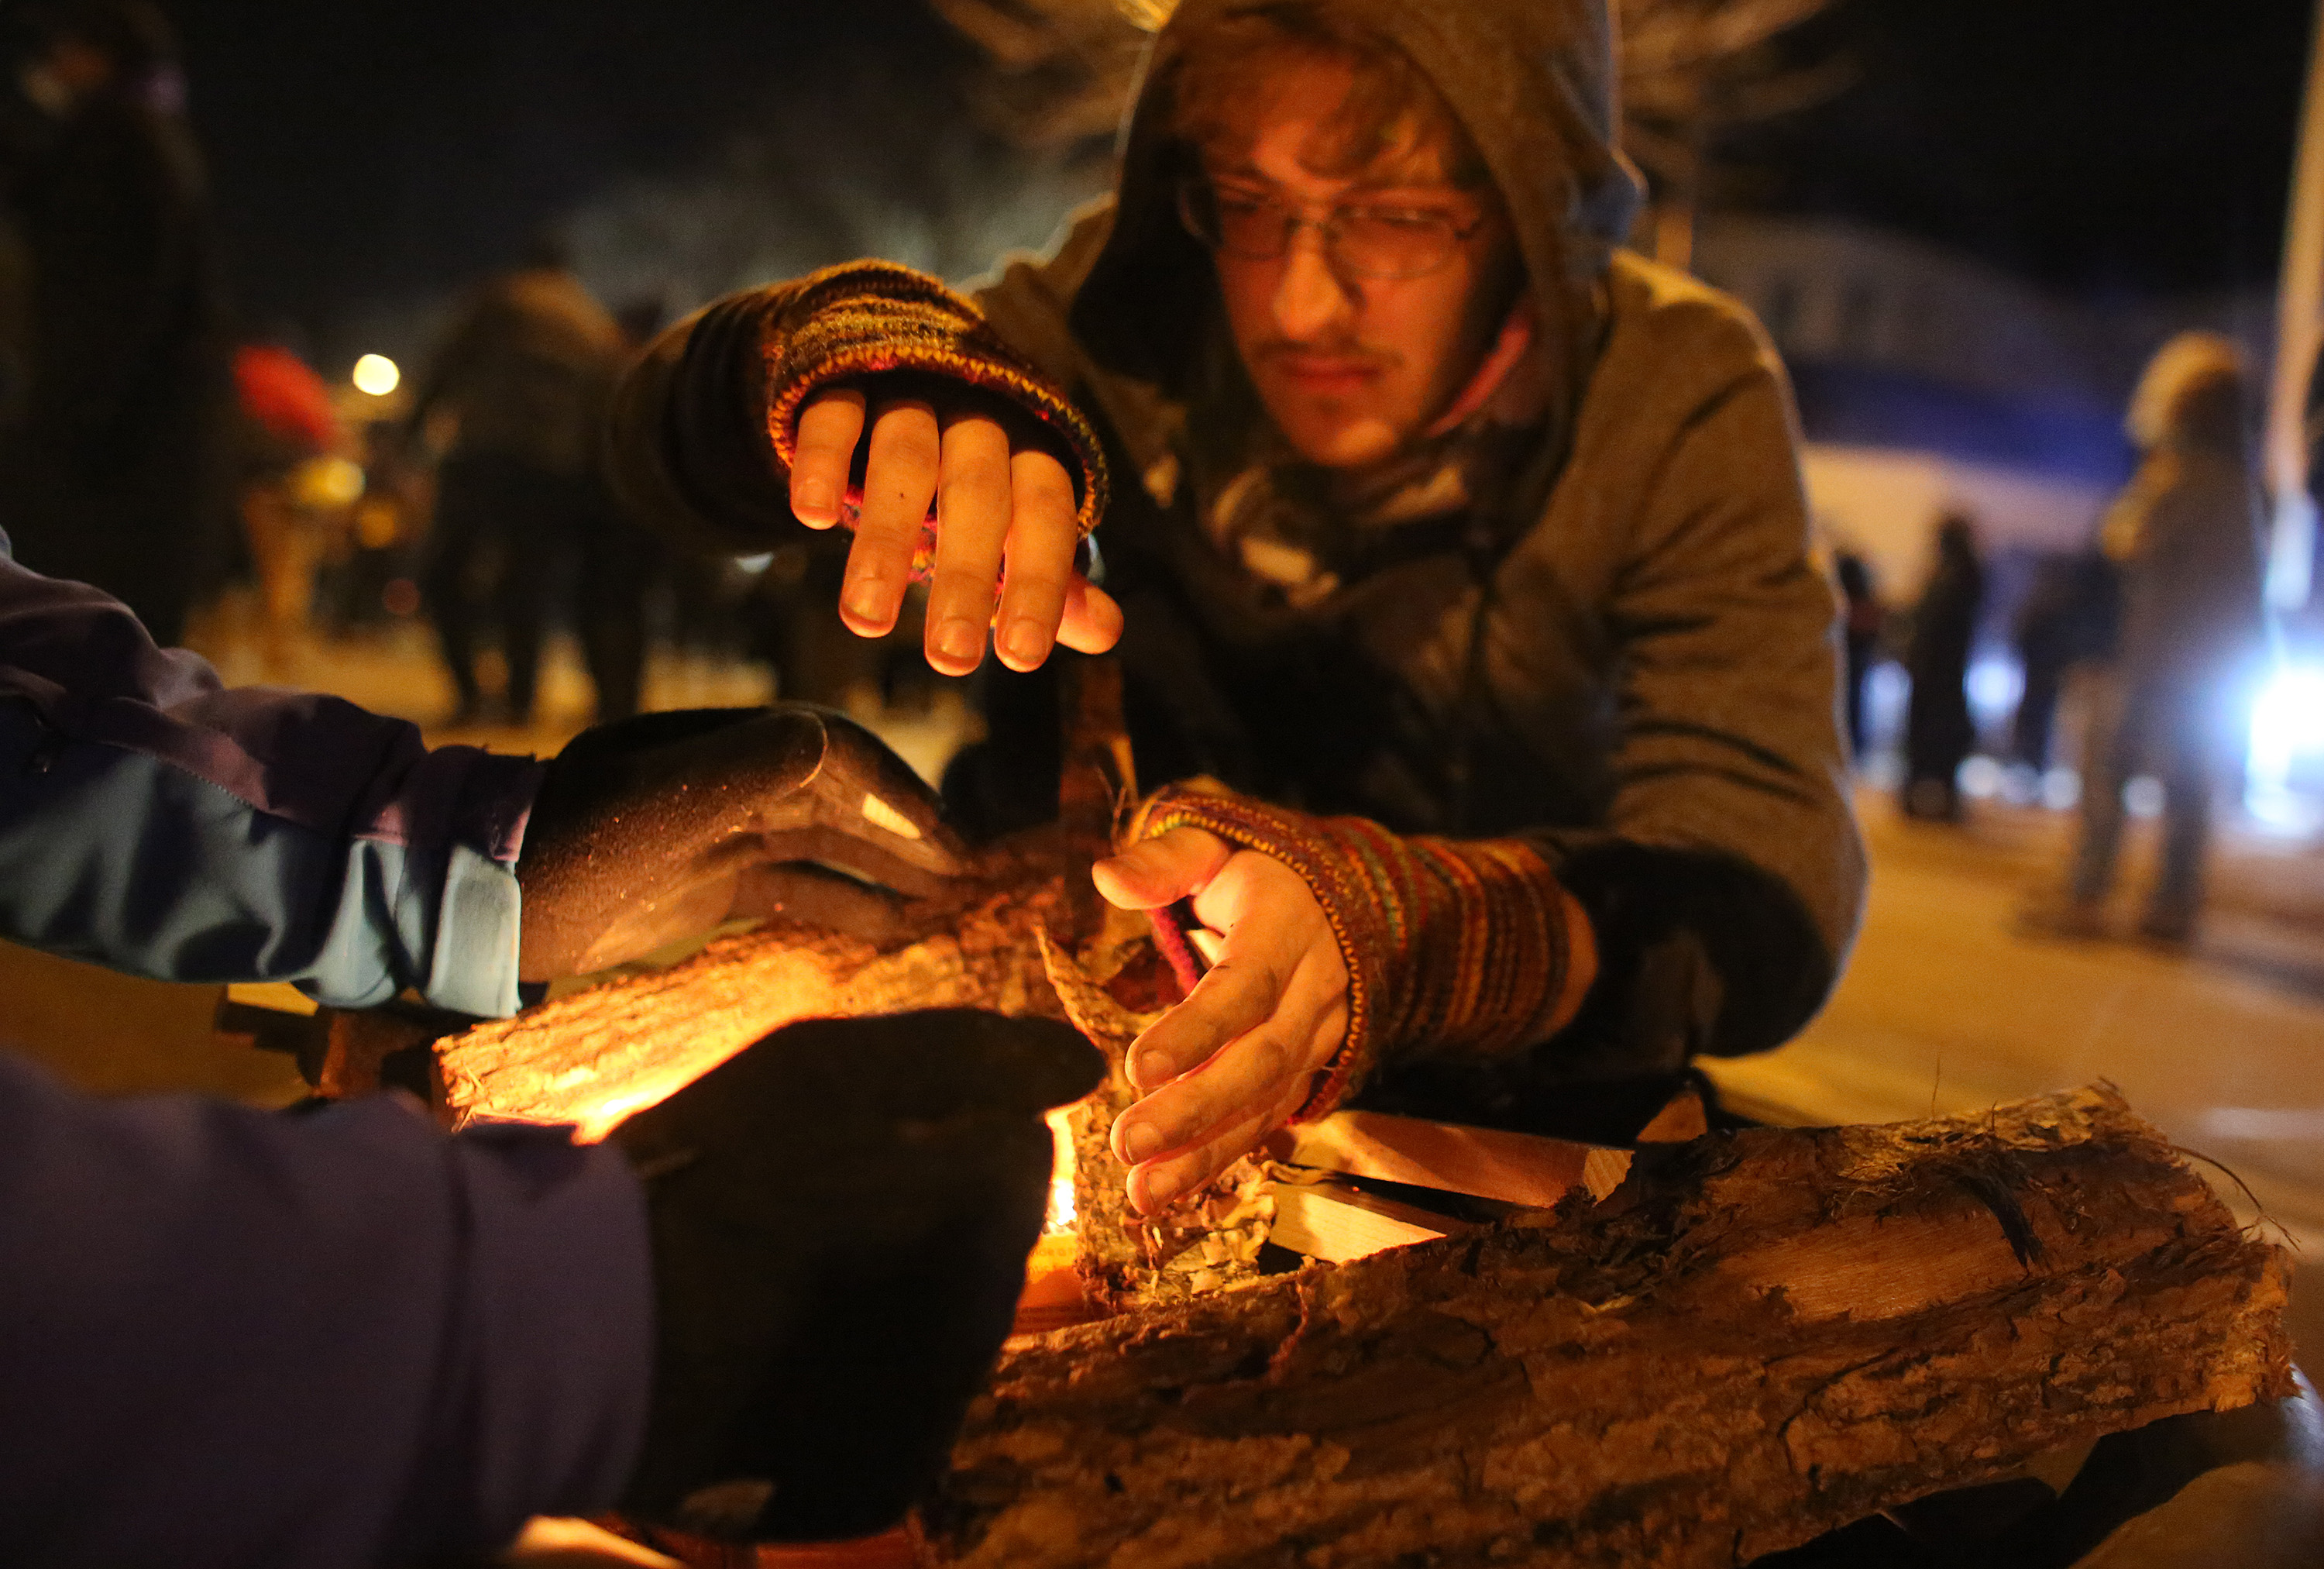 Andrew Bickford helped start a fire in one of the several fire pits on the five day of protesting in front of the Minneapolis Fourth Precinct. ] (KYNDELL HARKNESS/STAR TRIBUNE) kyndell.harkness@startribune.com Protesters in front of Minneapolis Fourth Precinct in Minneapolis Min., Thursday November 19, 2015.